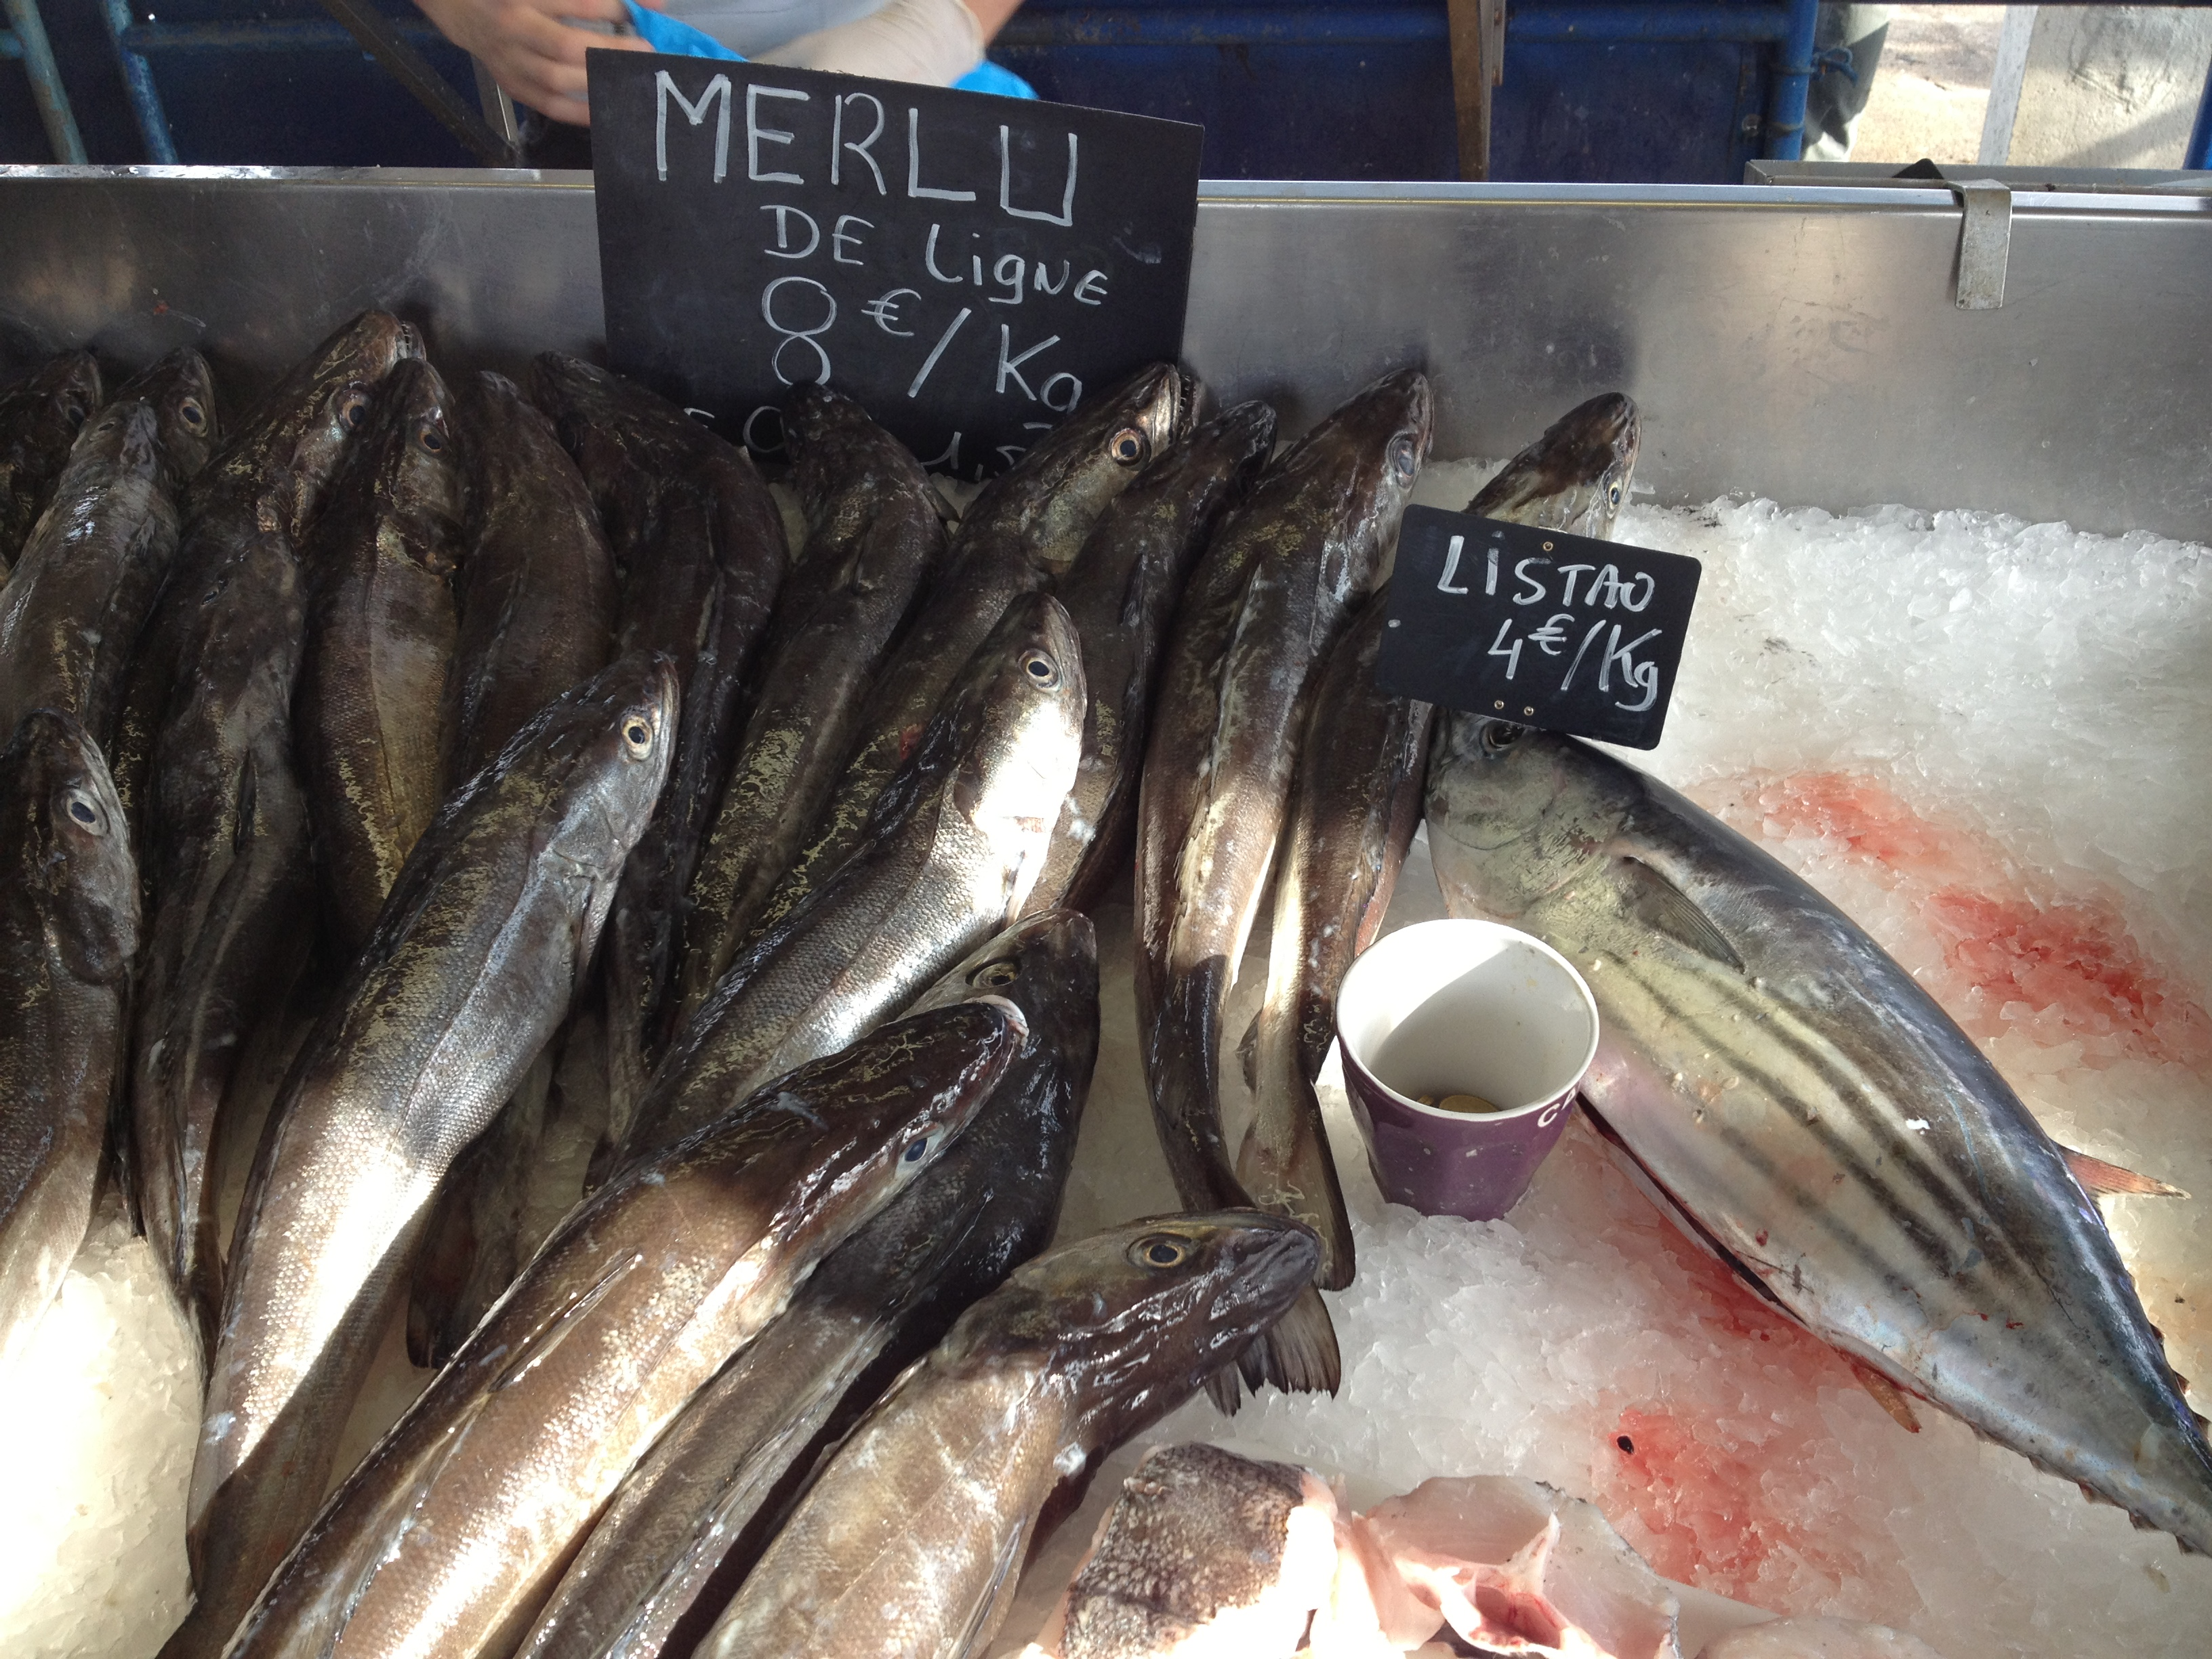 French cuisine my recipe how to cook a fish by my for Fish market cincinnati